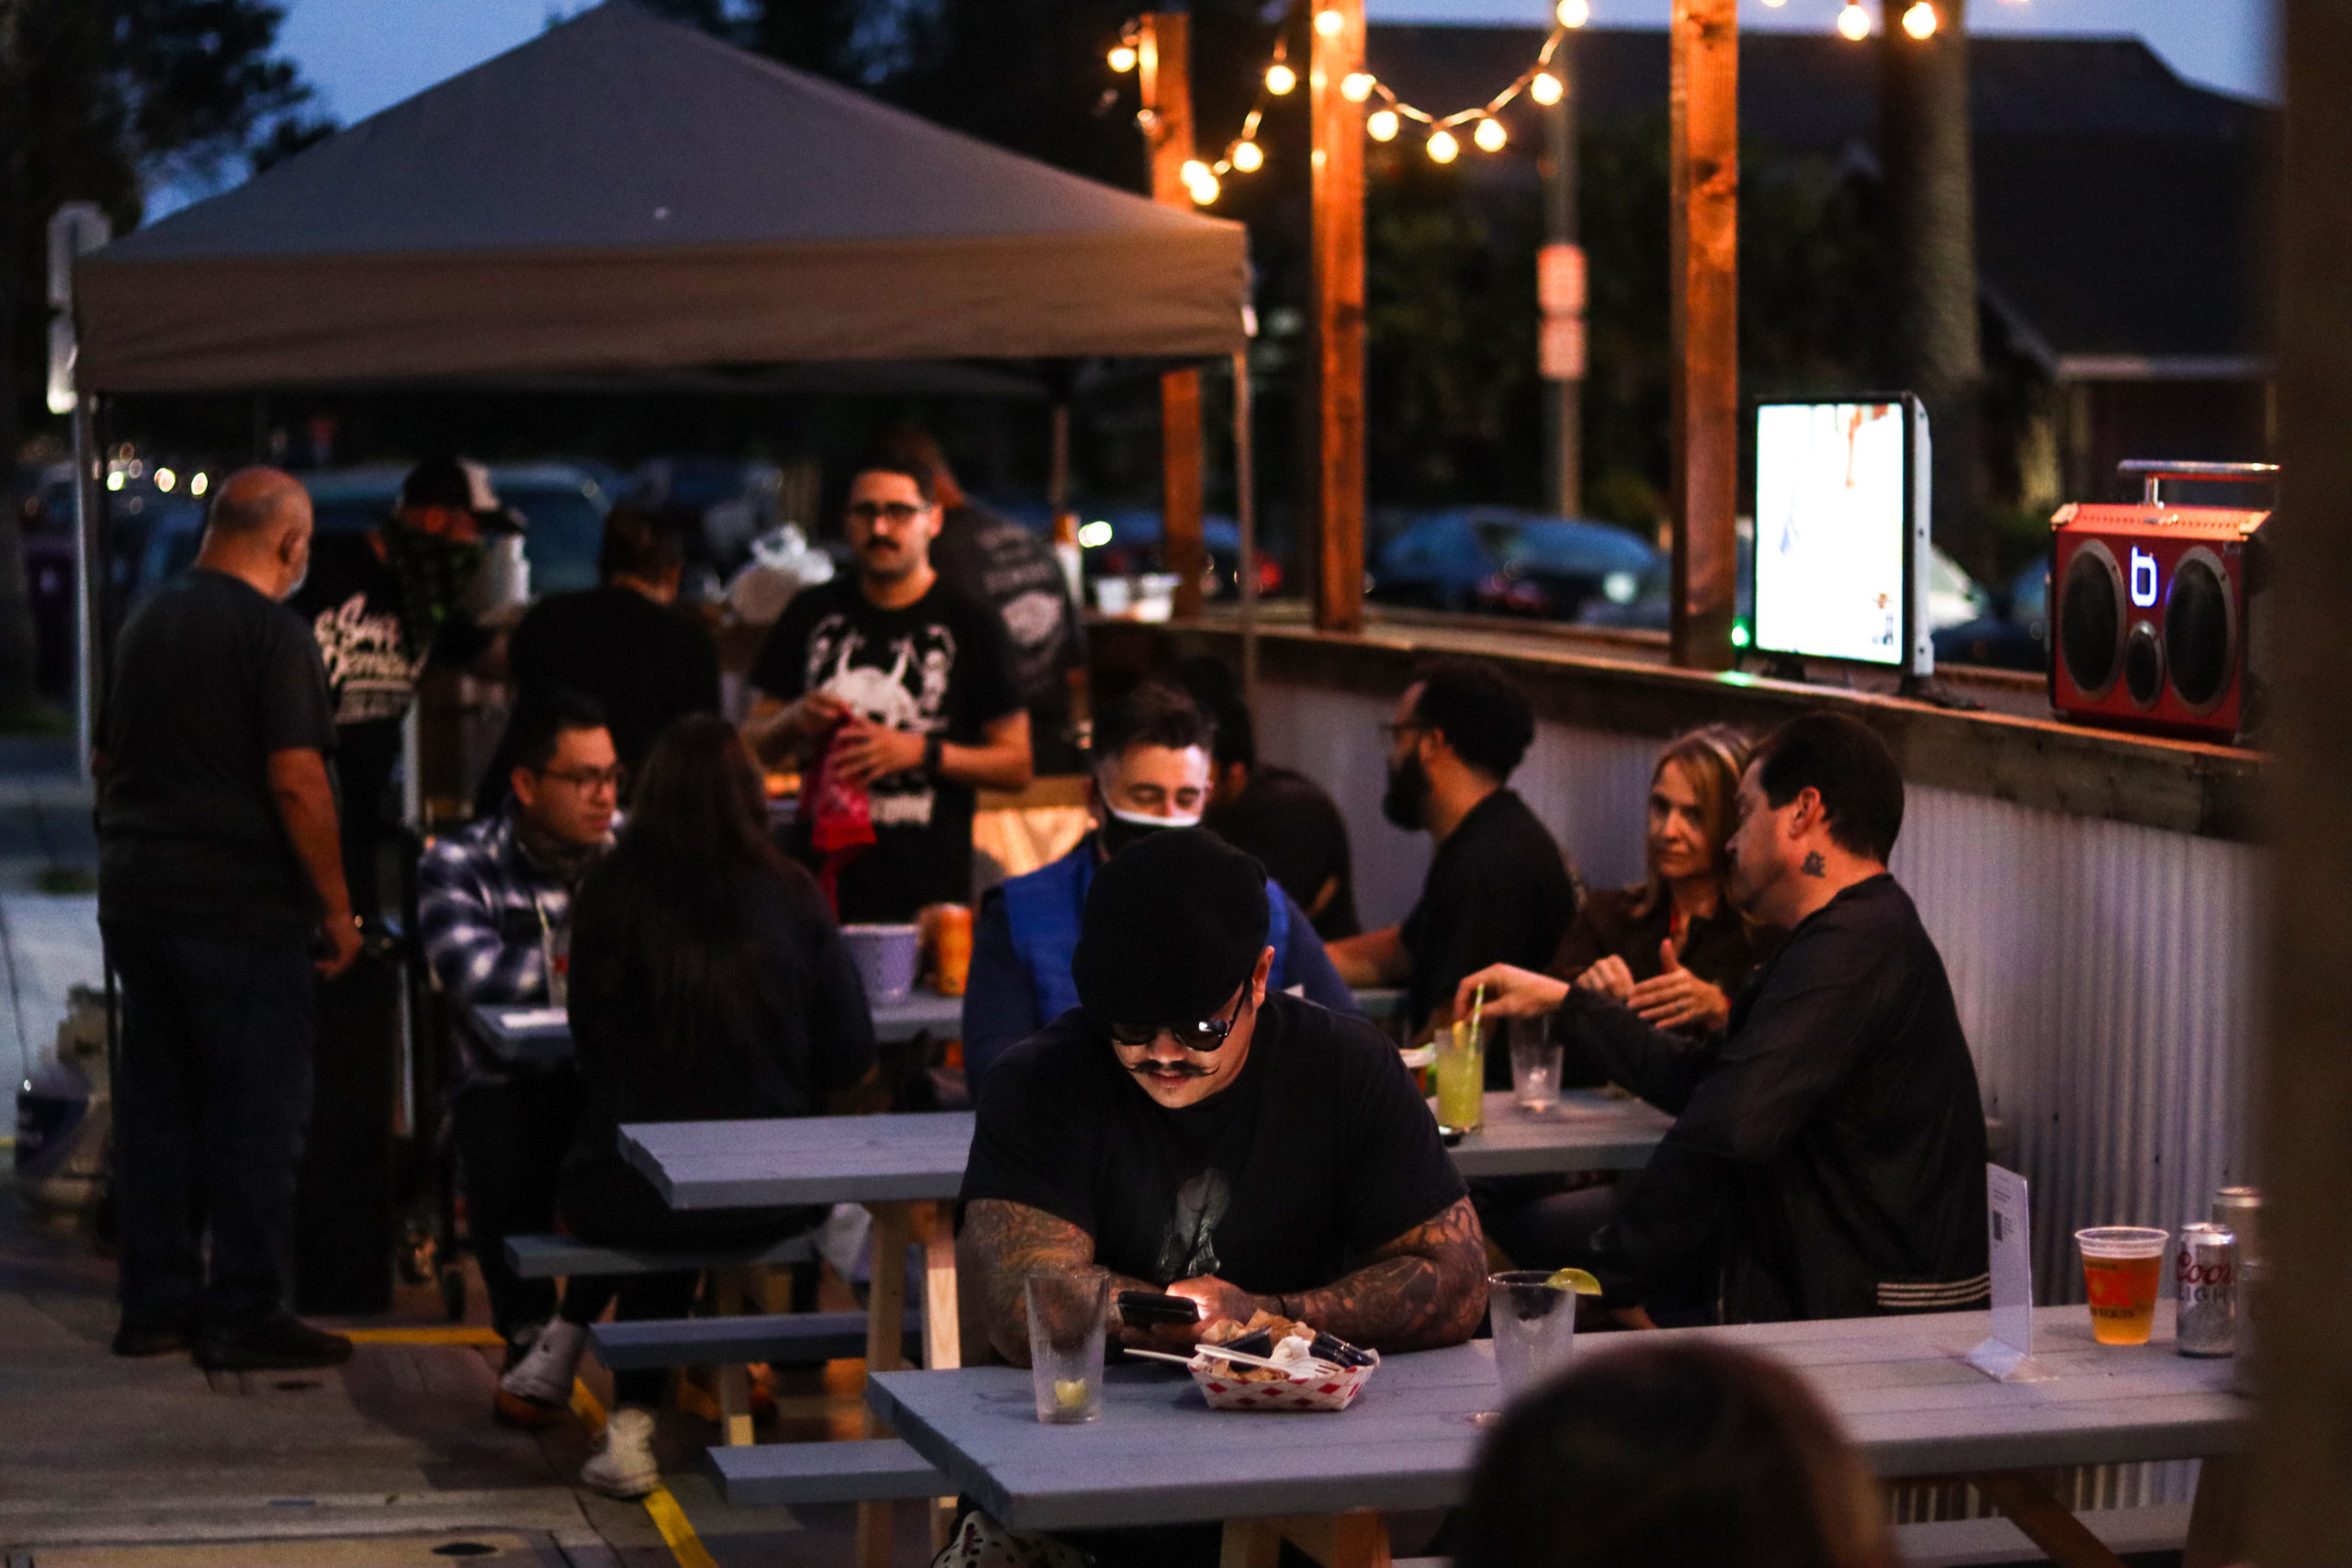 Long Beach may let restaurants keep temporary outdoor-dining areas longer than planned